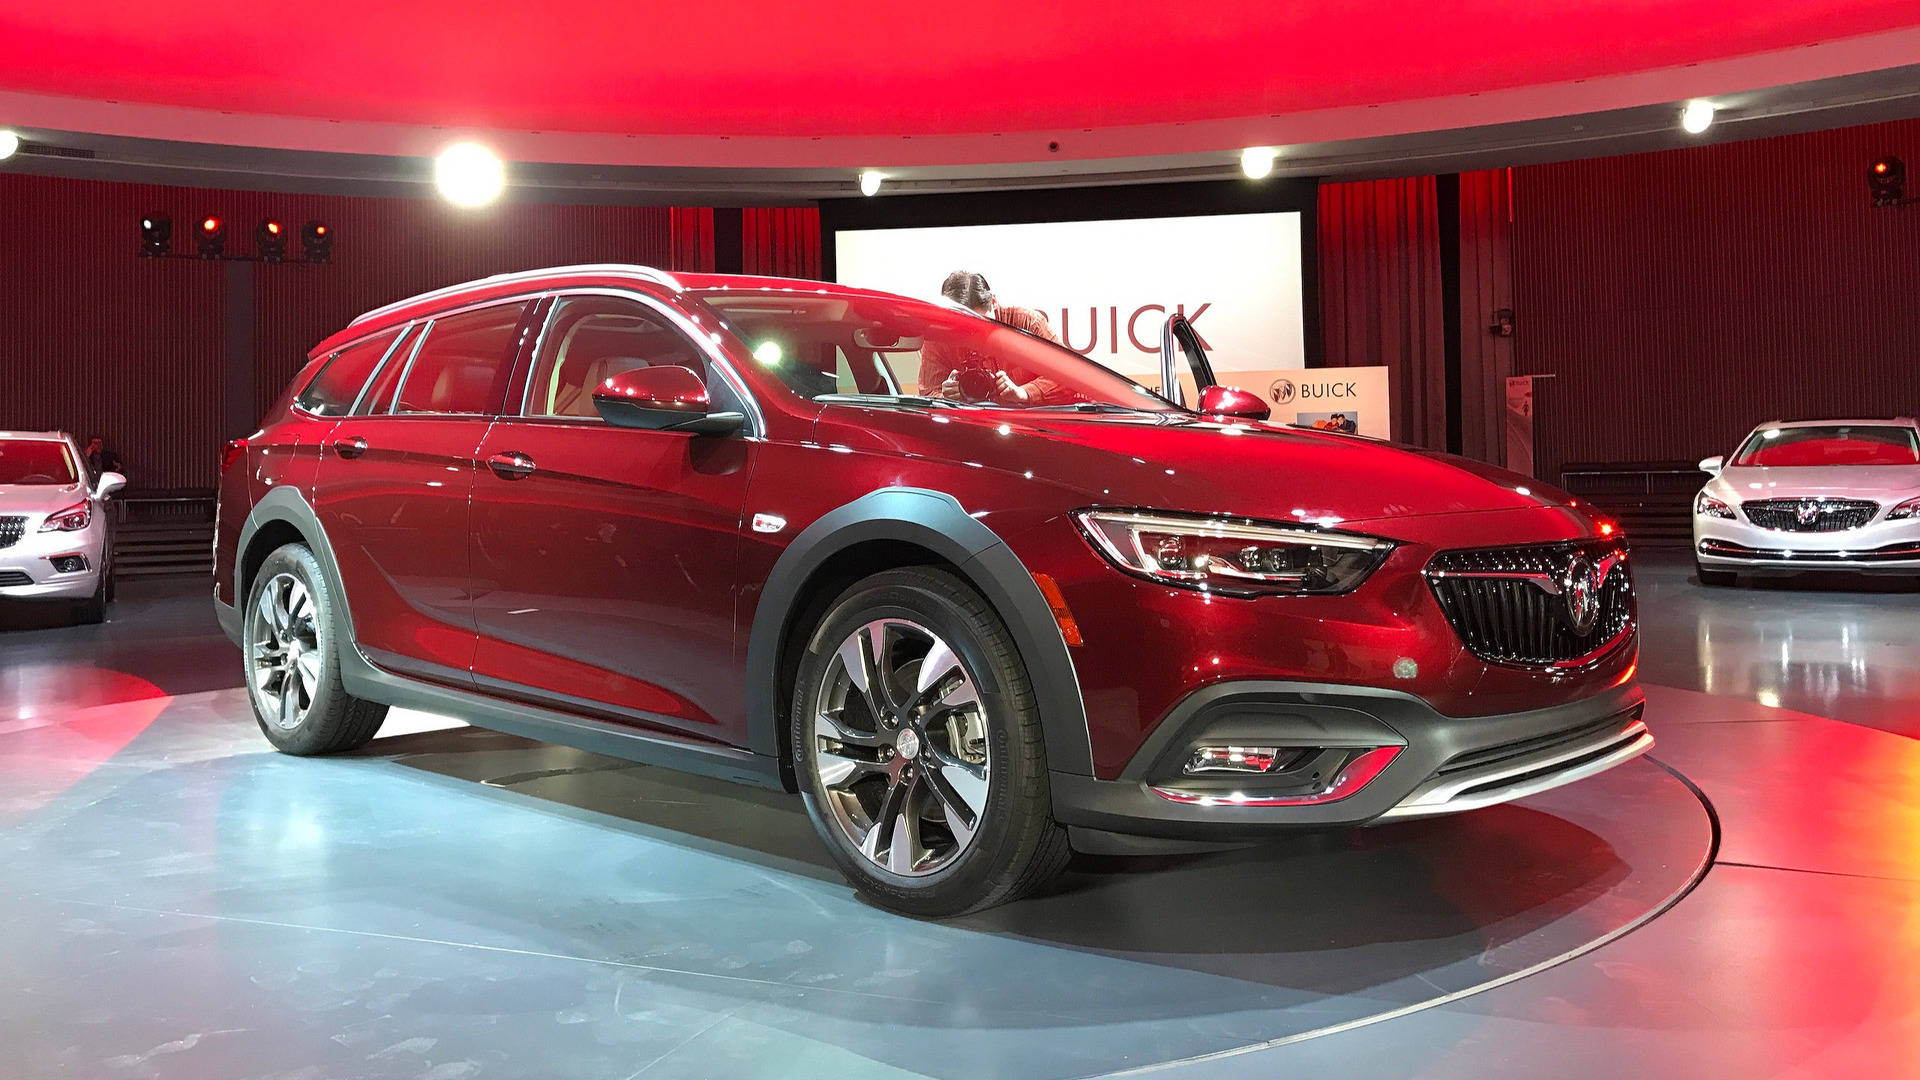 2018 Buick Regal Arrives With Sportback And Tourx Body Styles 2021 Buick Regal Tourx Accessories, Changes, Release Date